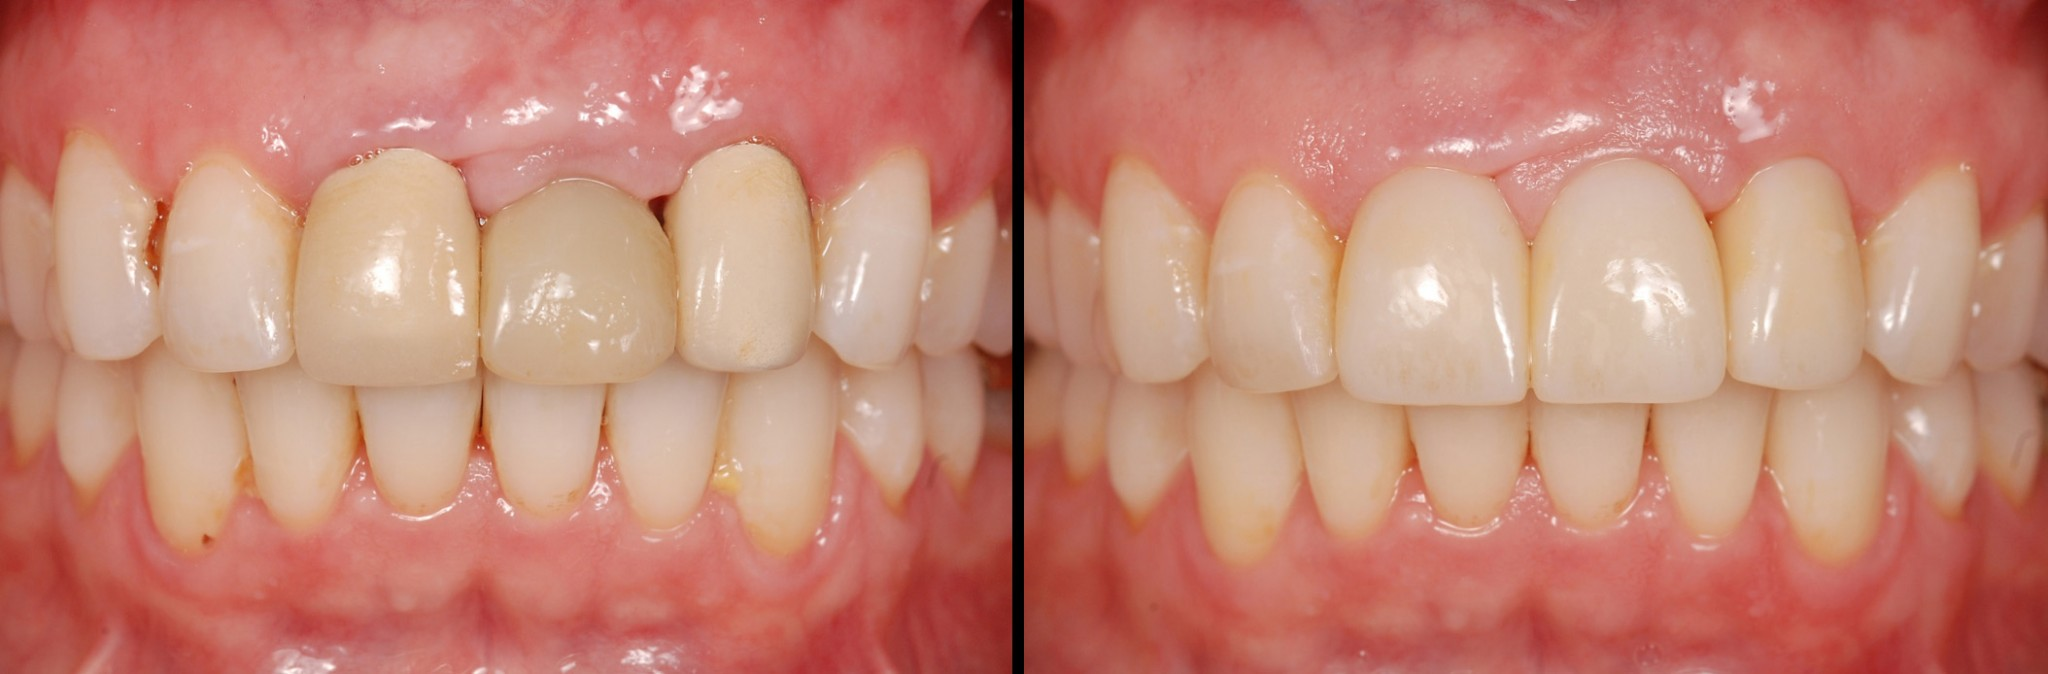 Polishing Provisional Restorations